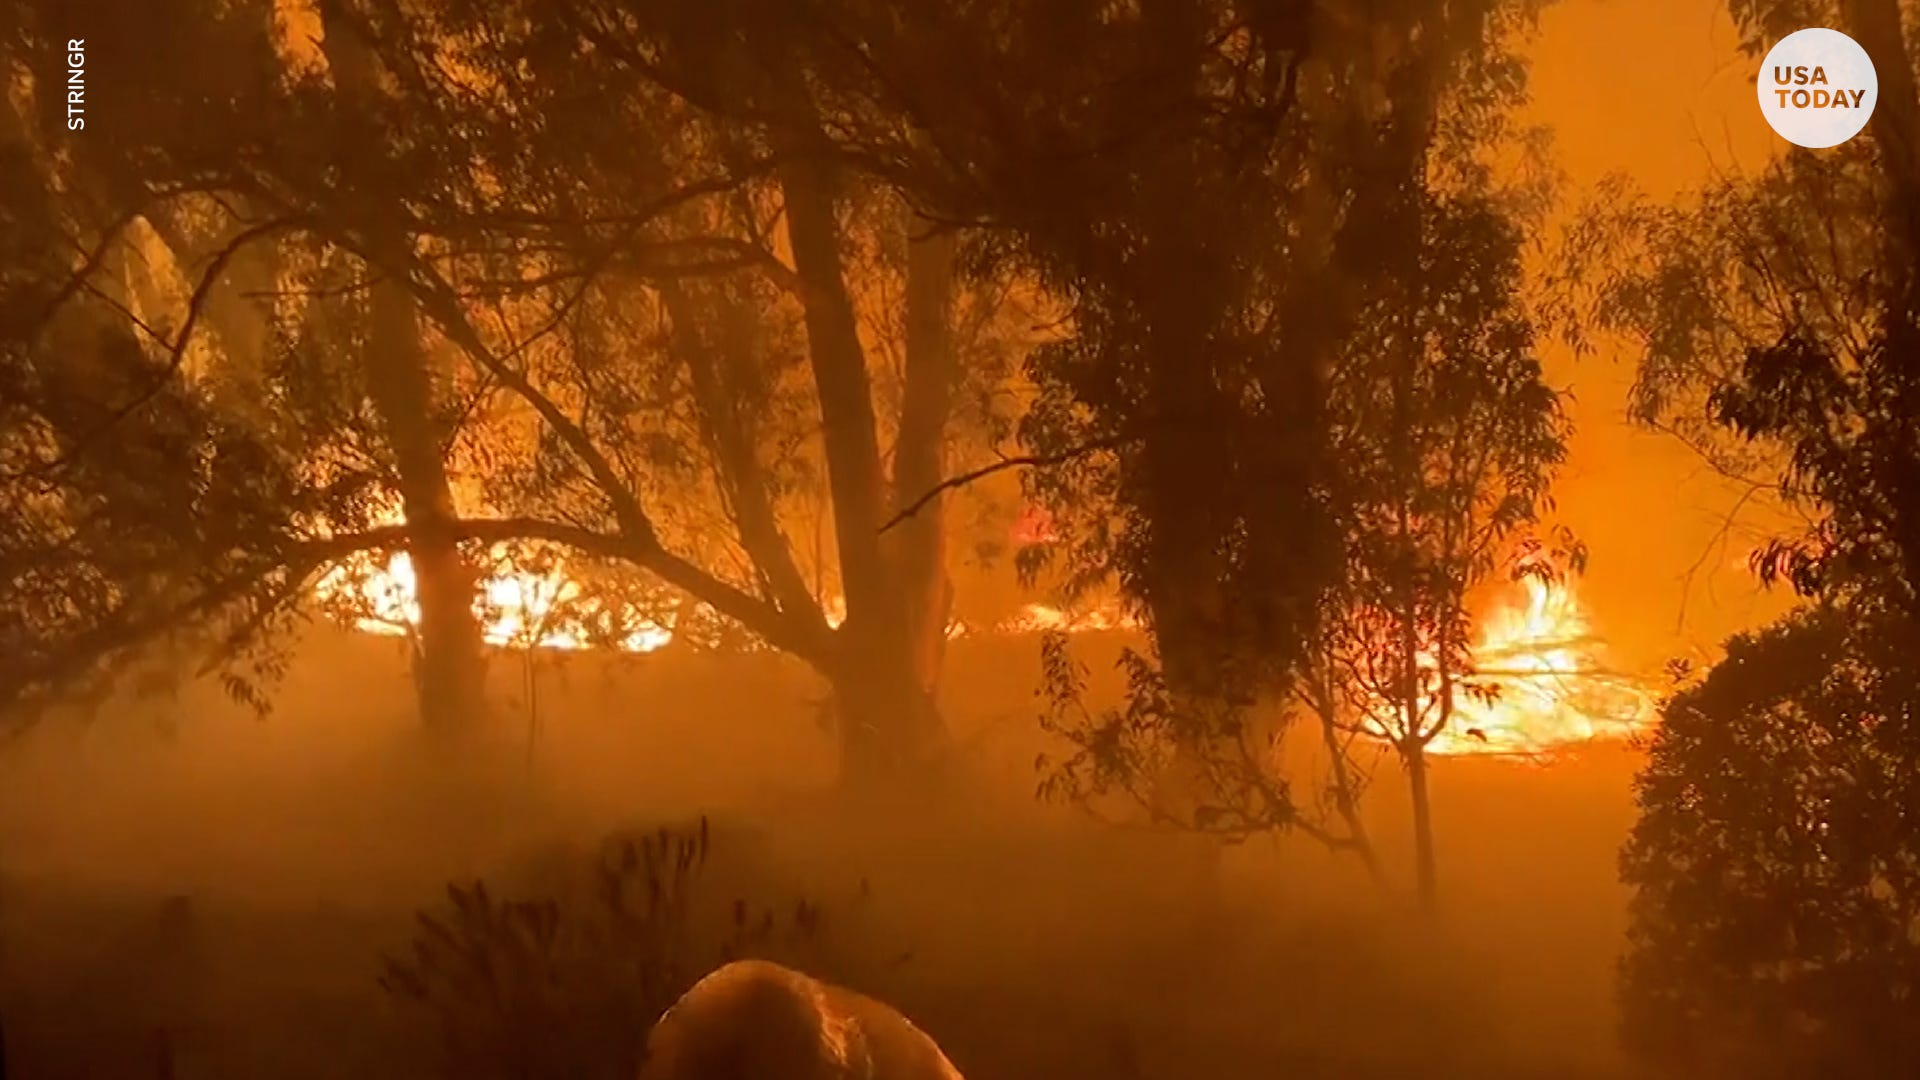 latest news Alisal fire breaks out in California causing evacuations, road closures